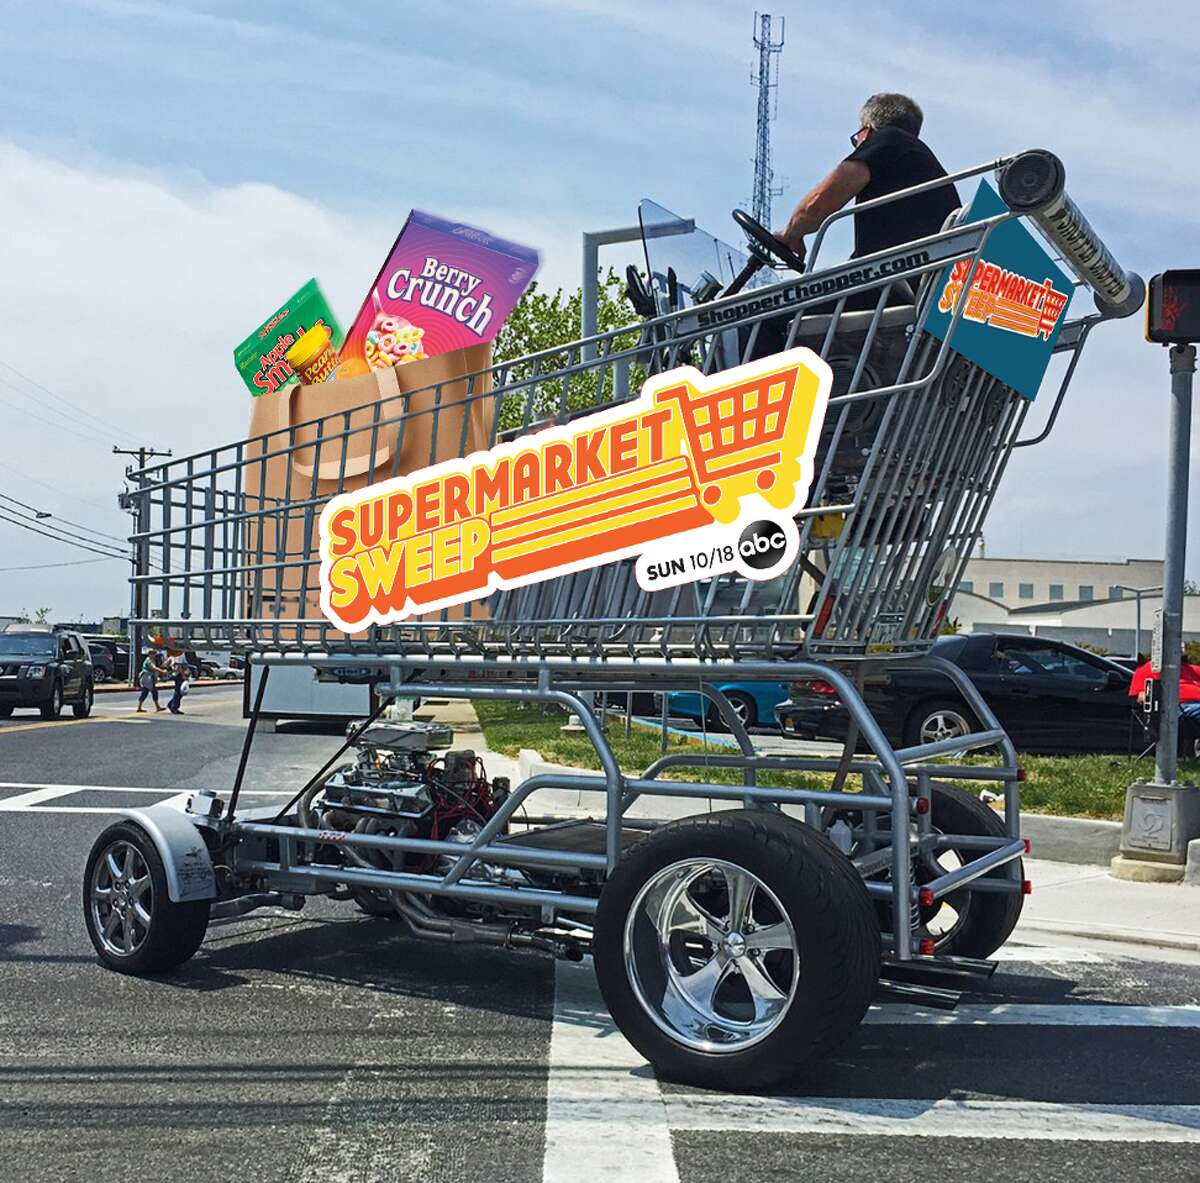 You can see this giant shopping cart at Yale Street Market on Oct. 12.